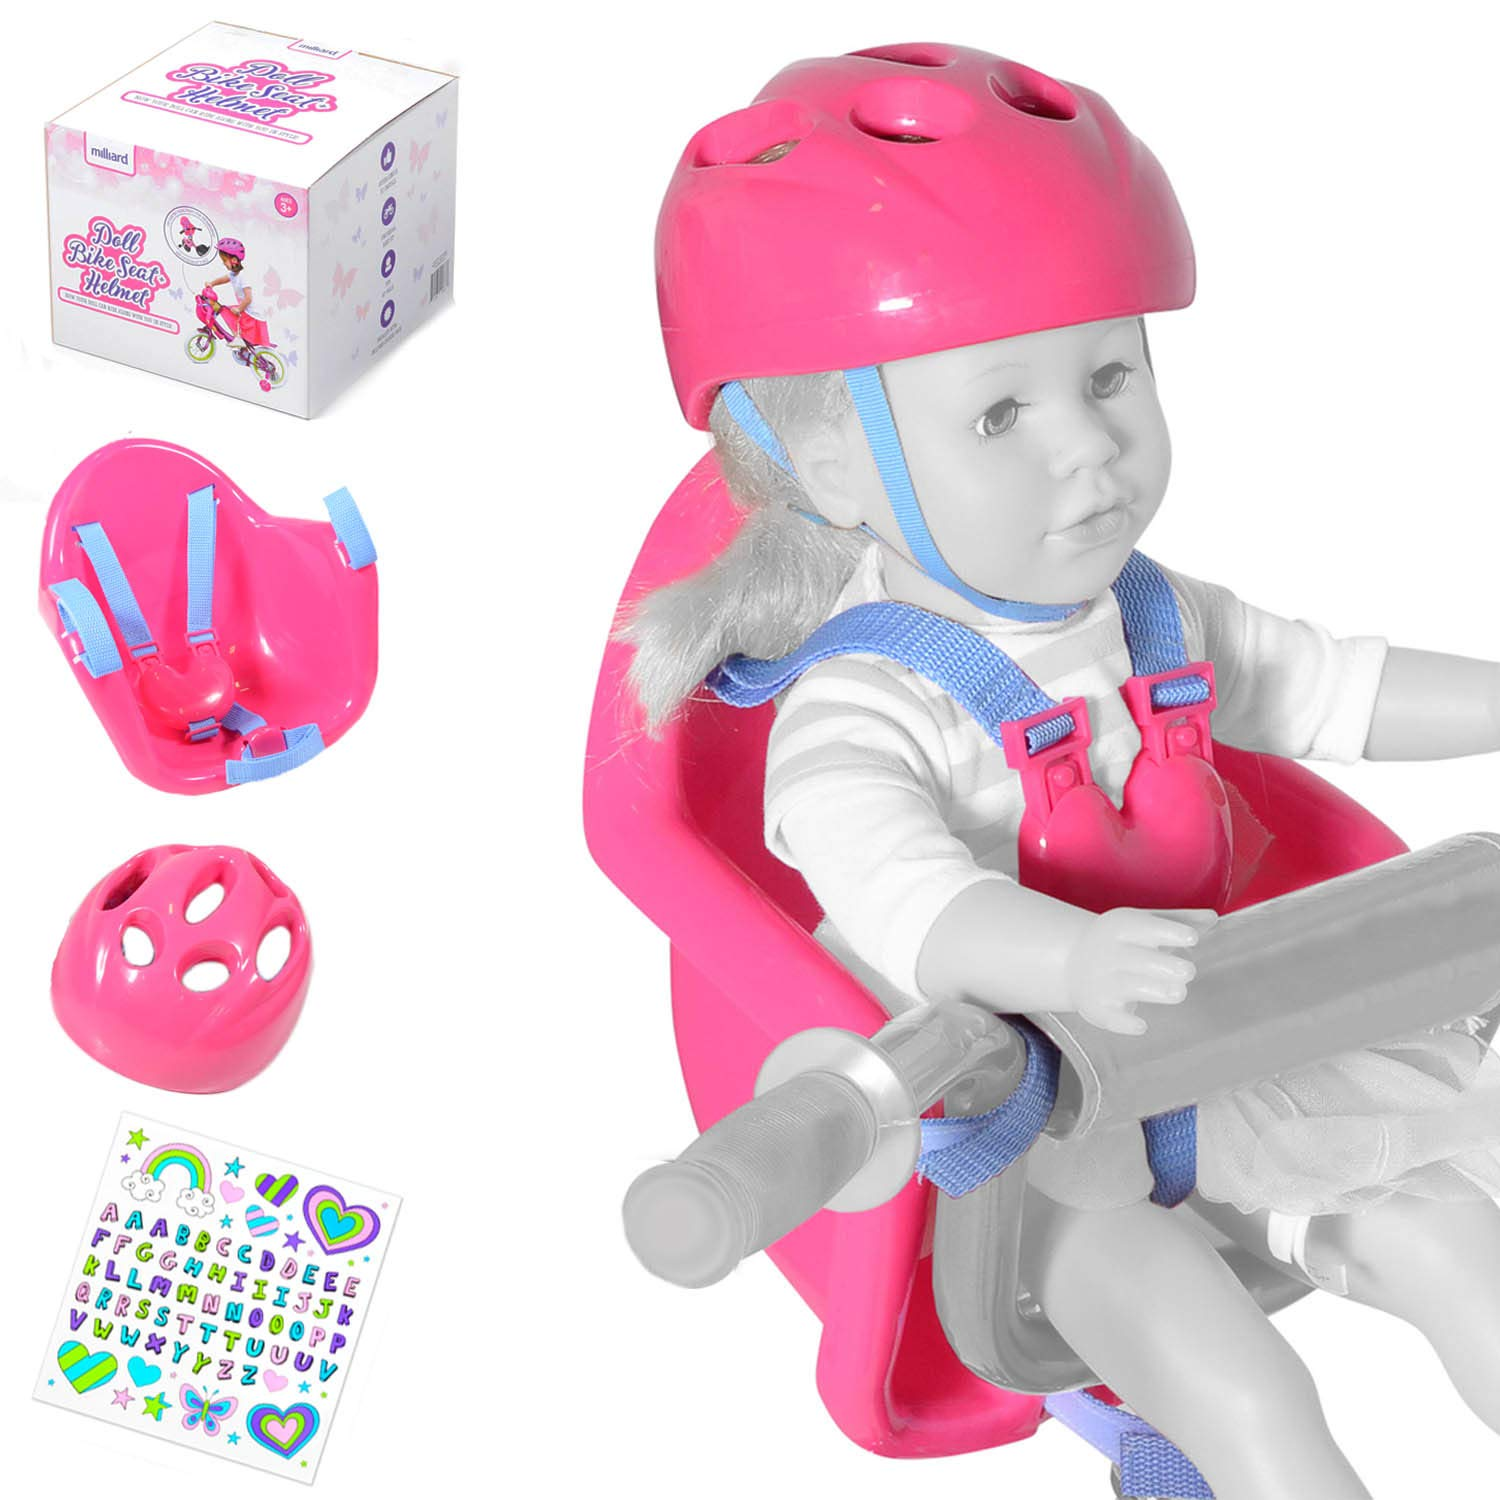 Milliard Doll Bike Seat and Helmet for 18 American Girl Dolls and Stuffed Animals with Decorative Sticker Pack